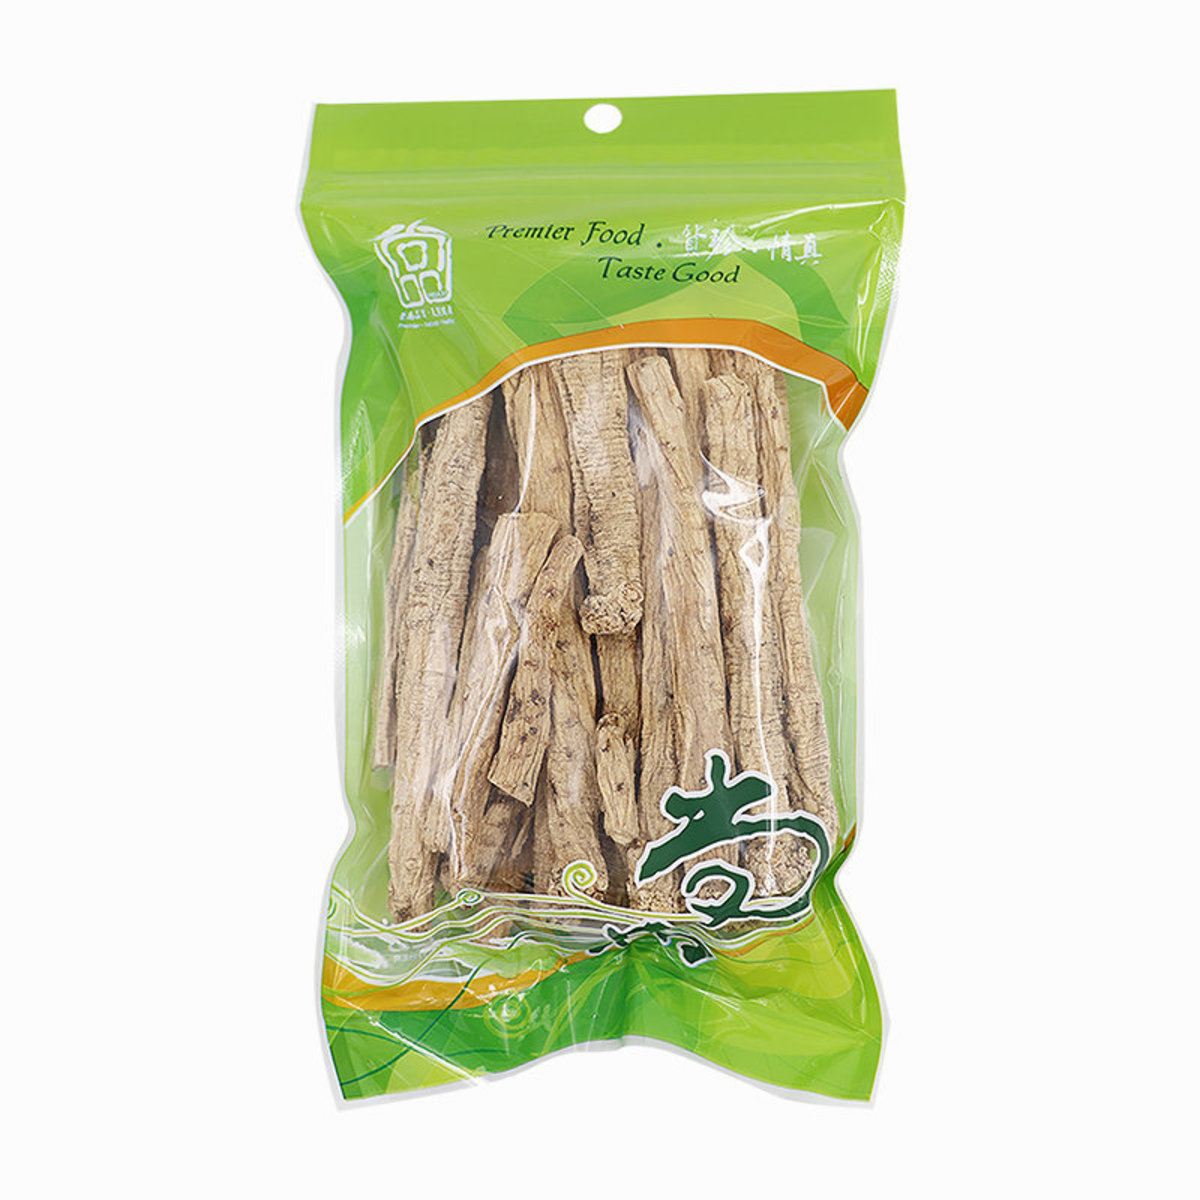 Pilose Asiabell Root(10-12 pcs/ tael)(China)(150g/pack)